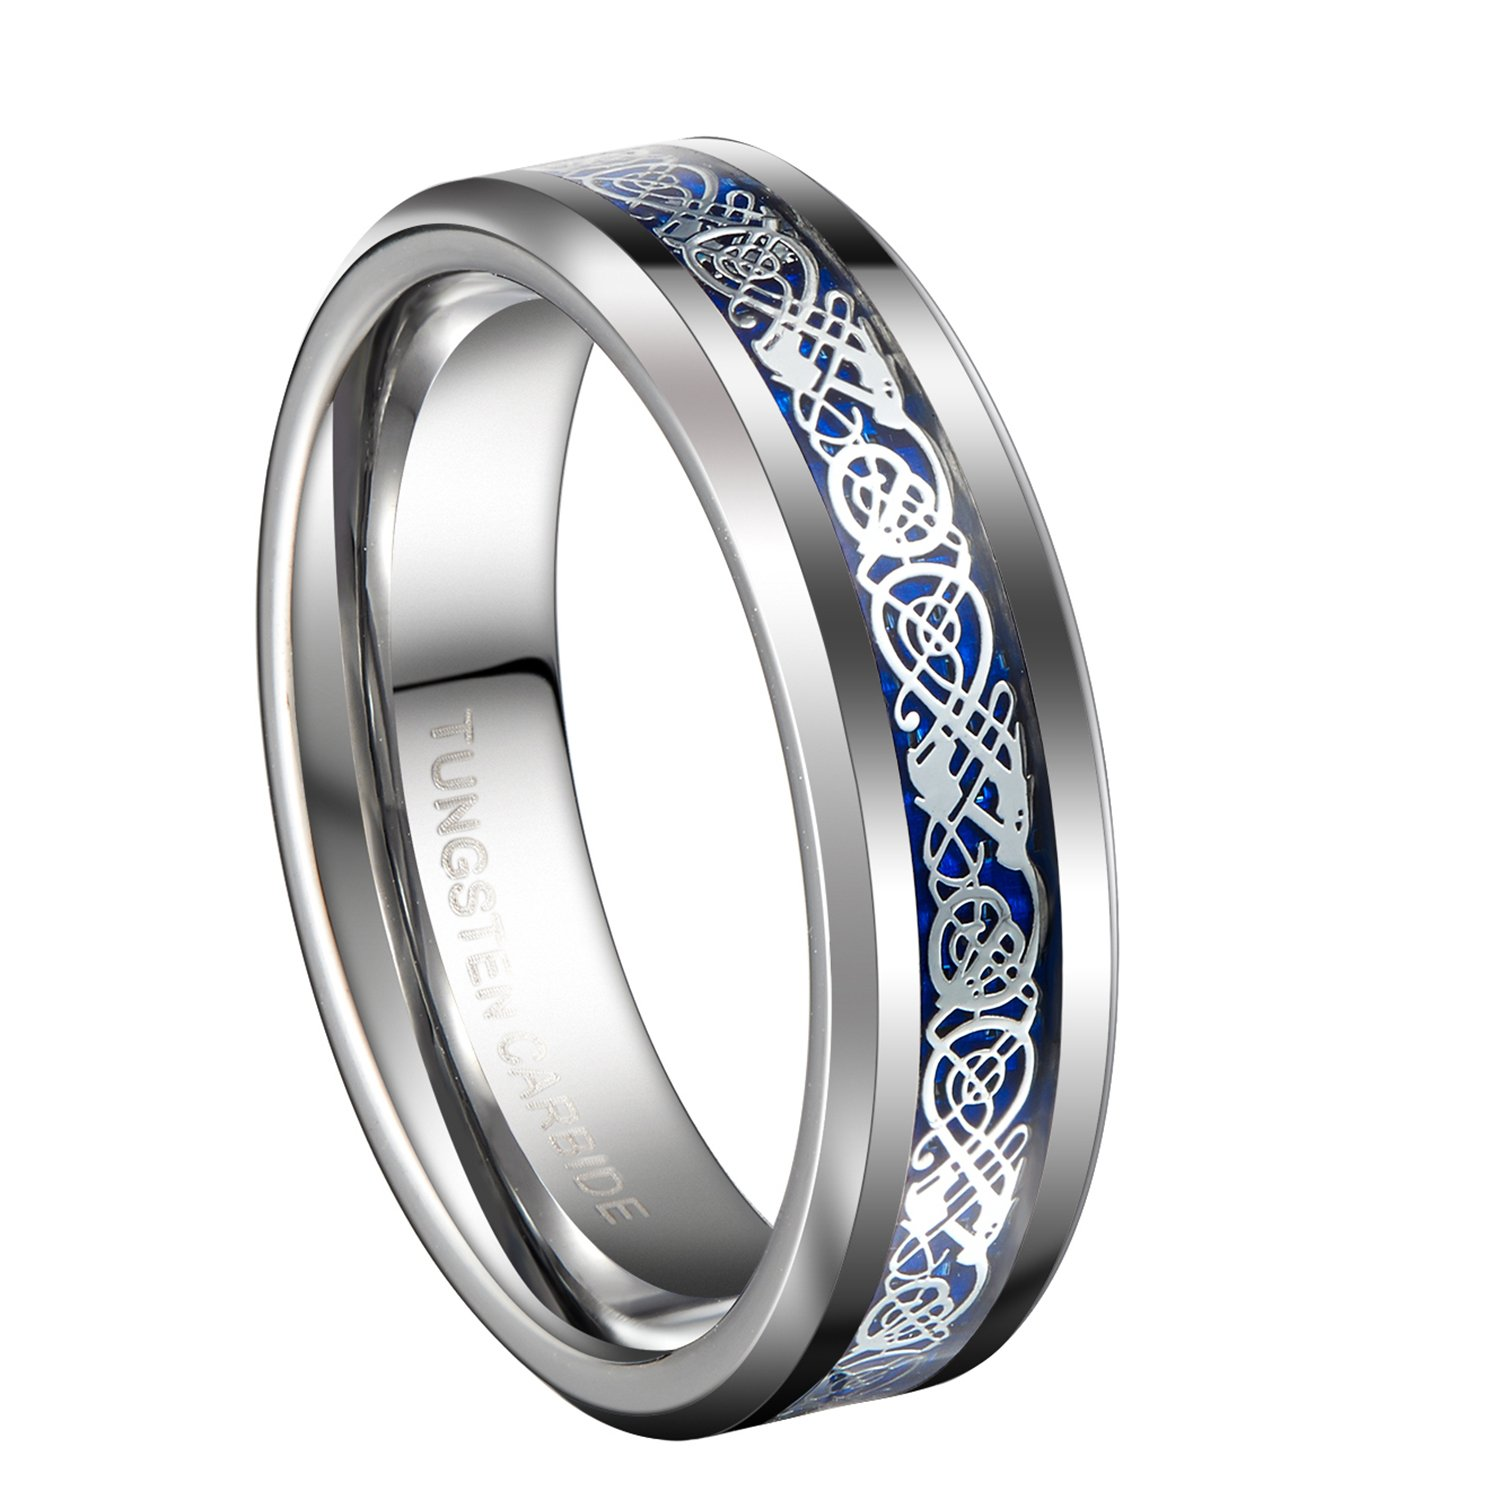 grooved design ring b archives wedding with category product tungsten font rings bevel silver bands brushed affordable